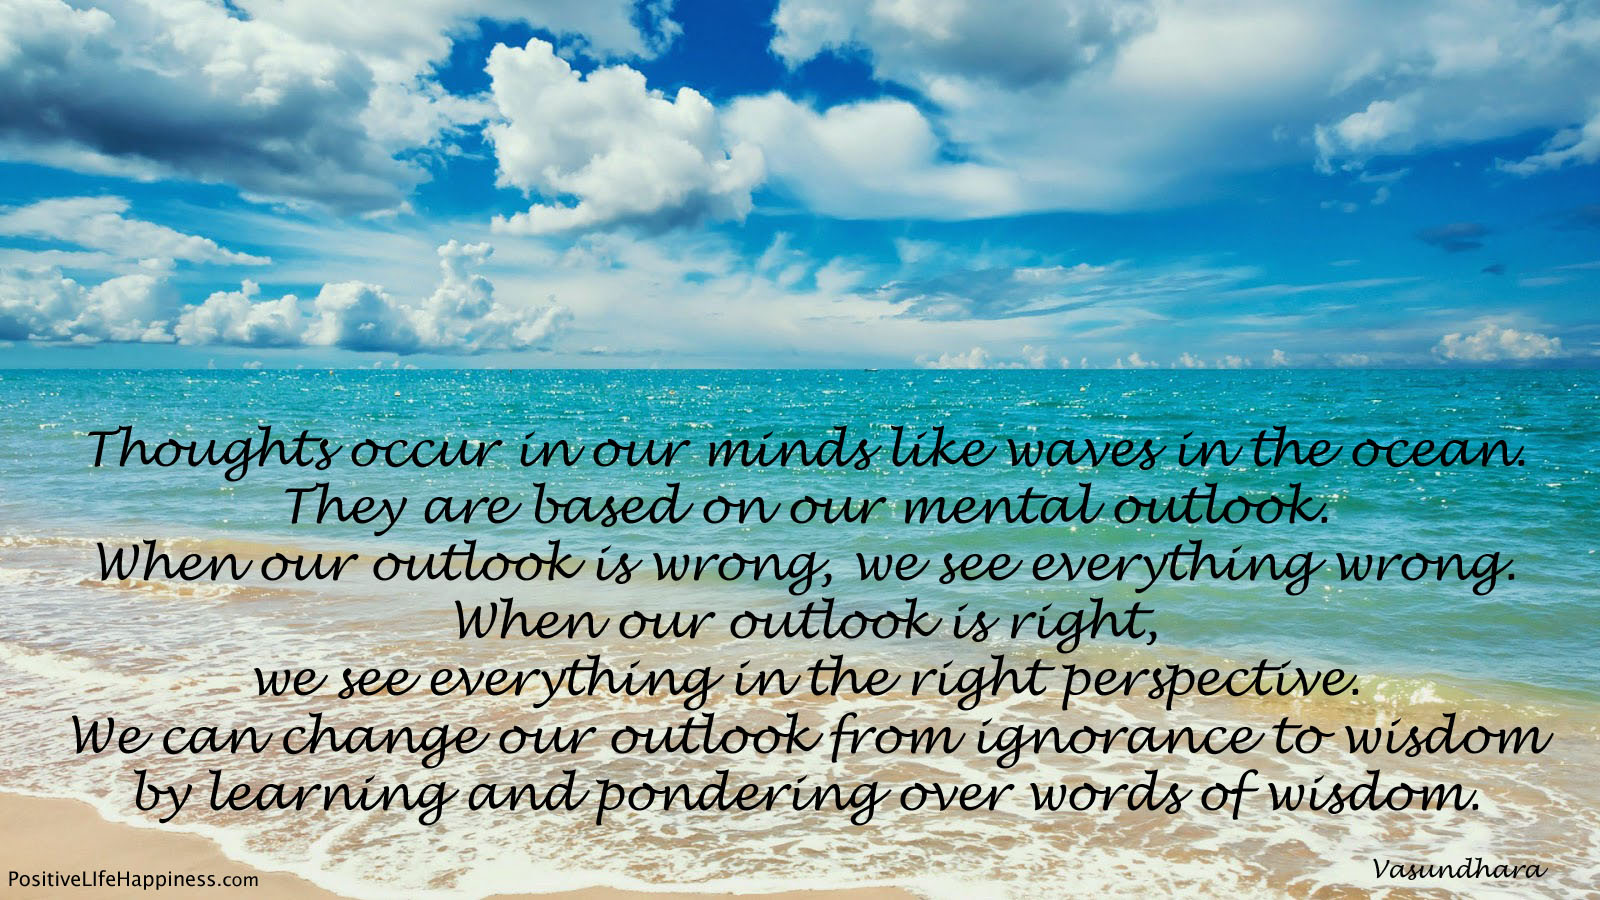 Mental outlook is everything